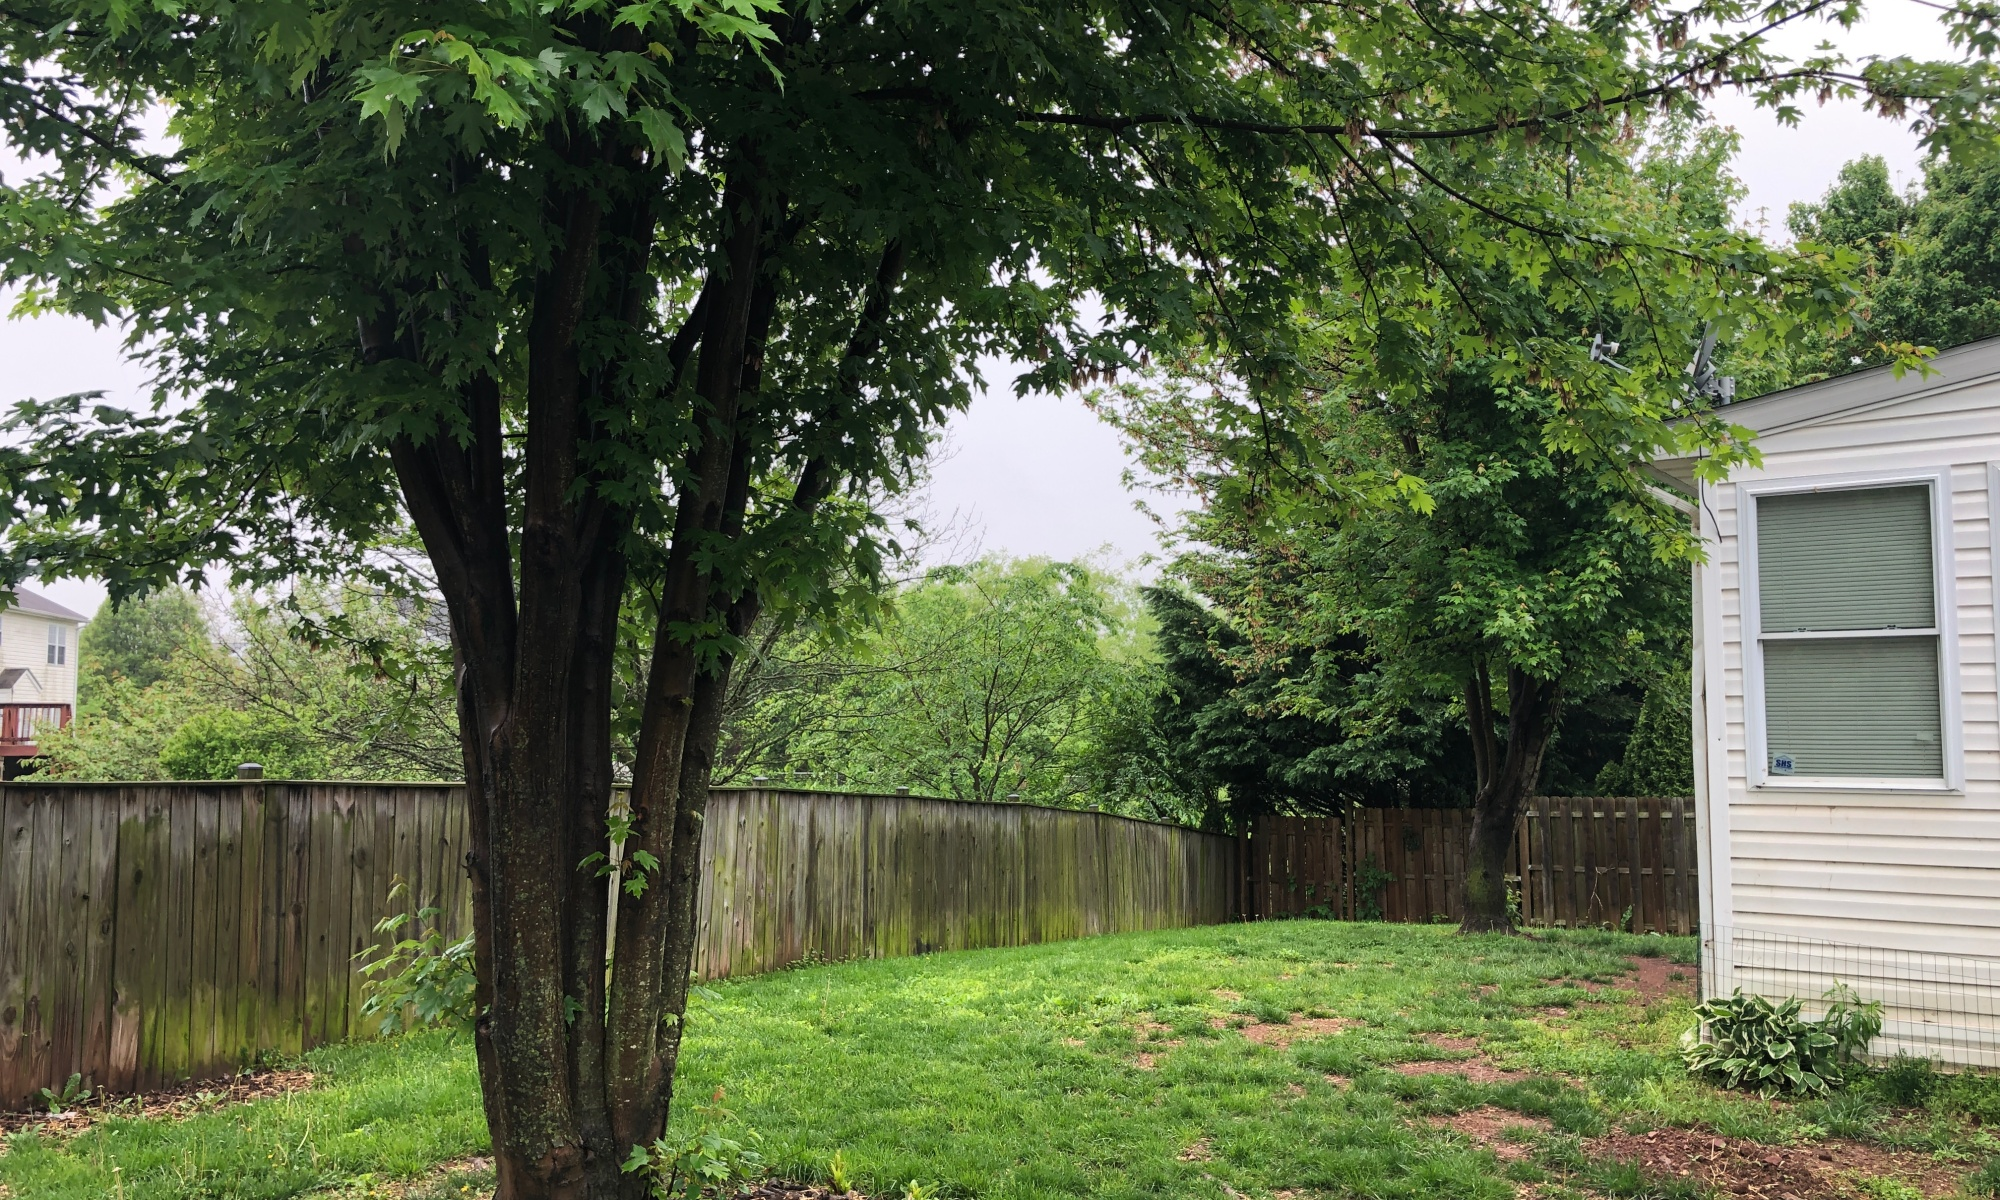 Backyard Prior to Tree Removal